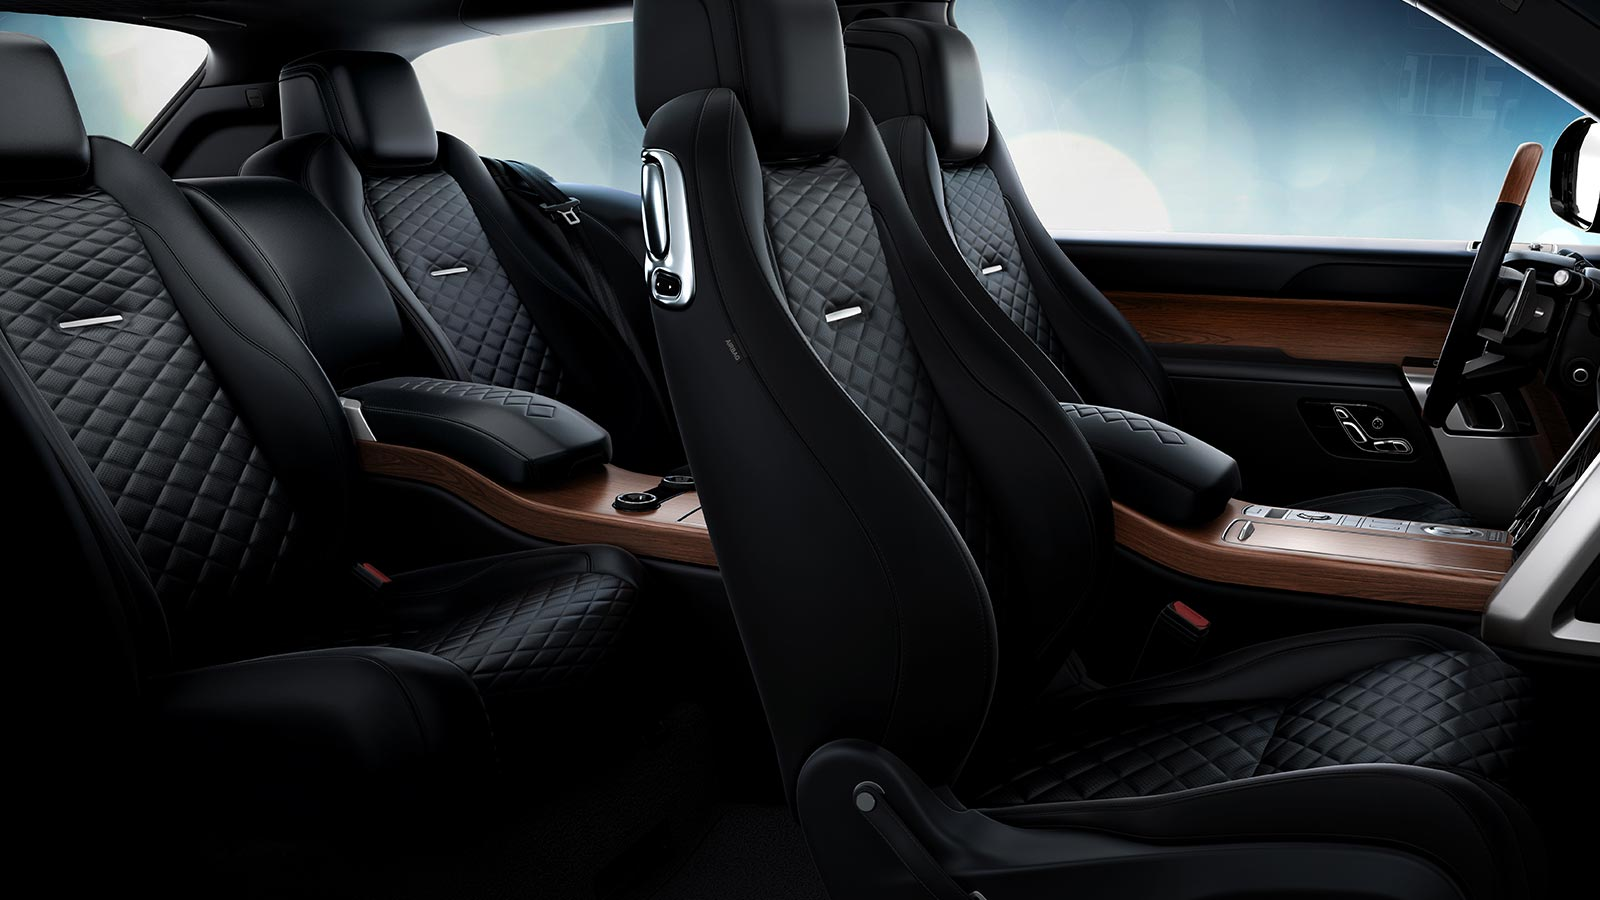 The Range Rover SV Coupe interior in Ebony and Ebony